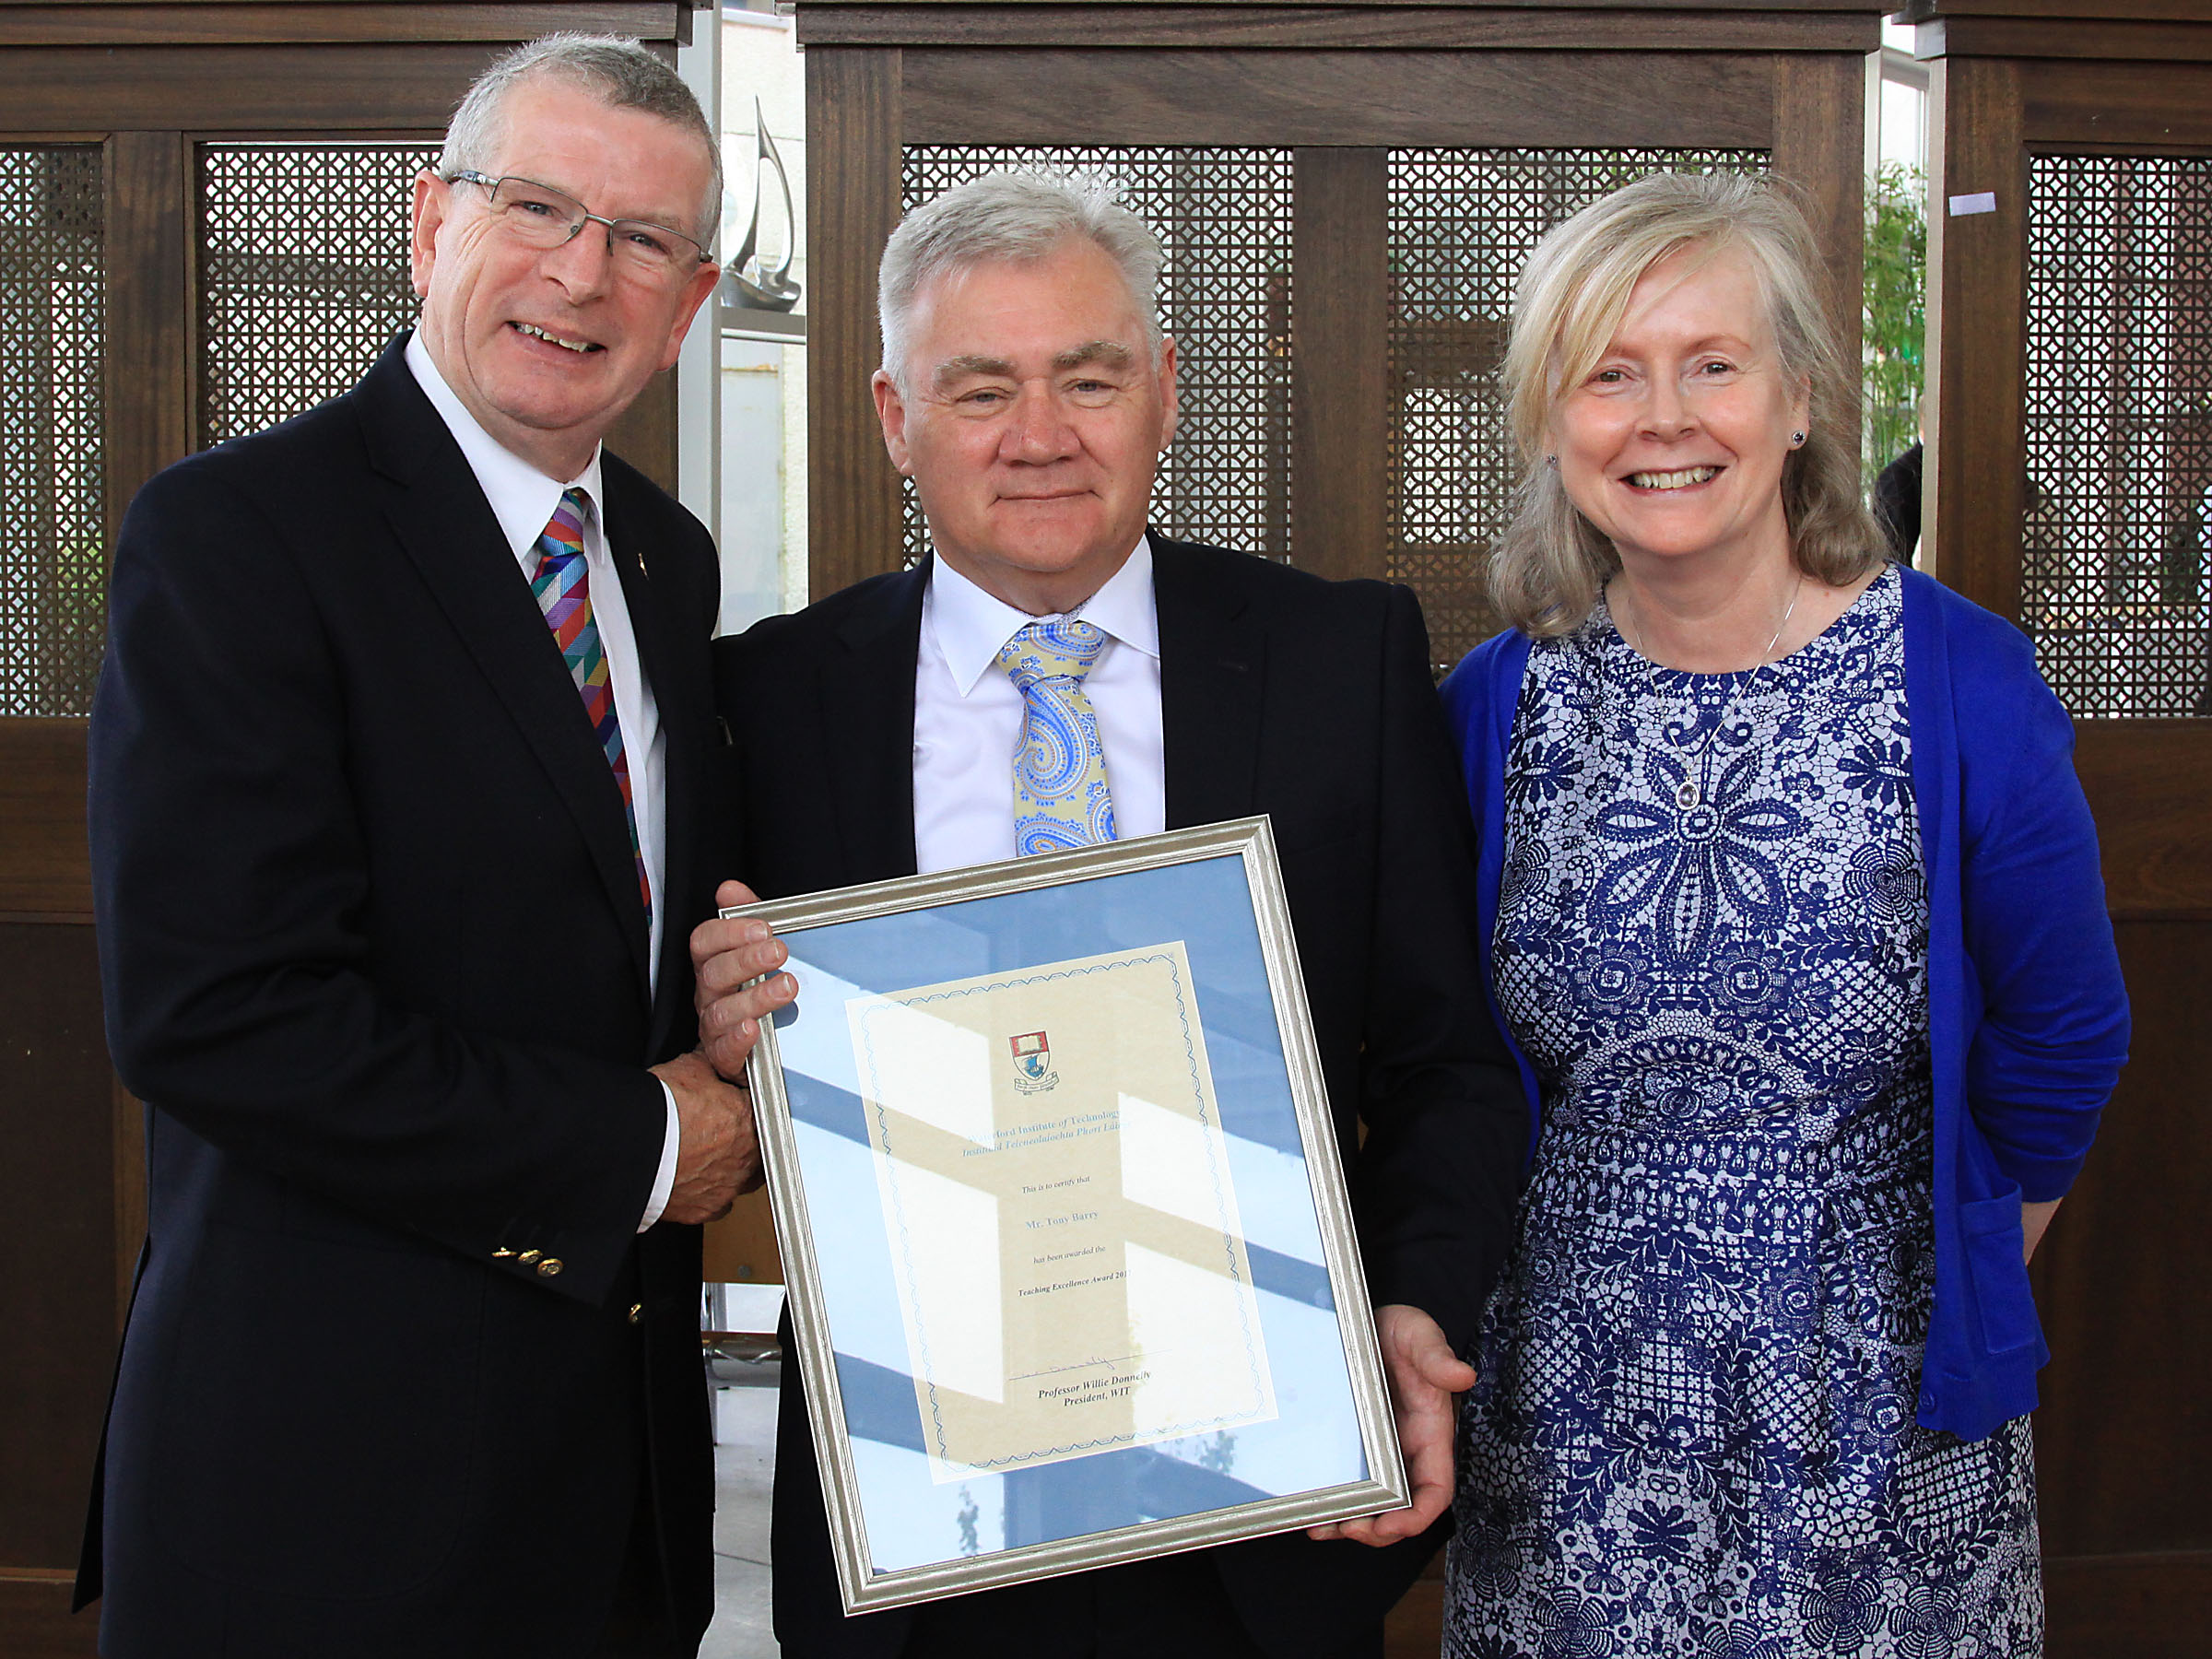 Pictured from left at the 2017 Teaching Excellence Award ceremony are Dr Ray Cullen, Head of Department of Languages Tourism Hospitality, award recipient, chef Tony Barry and Head of the School of Humanities, Dr Marian O'Neill